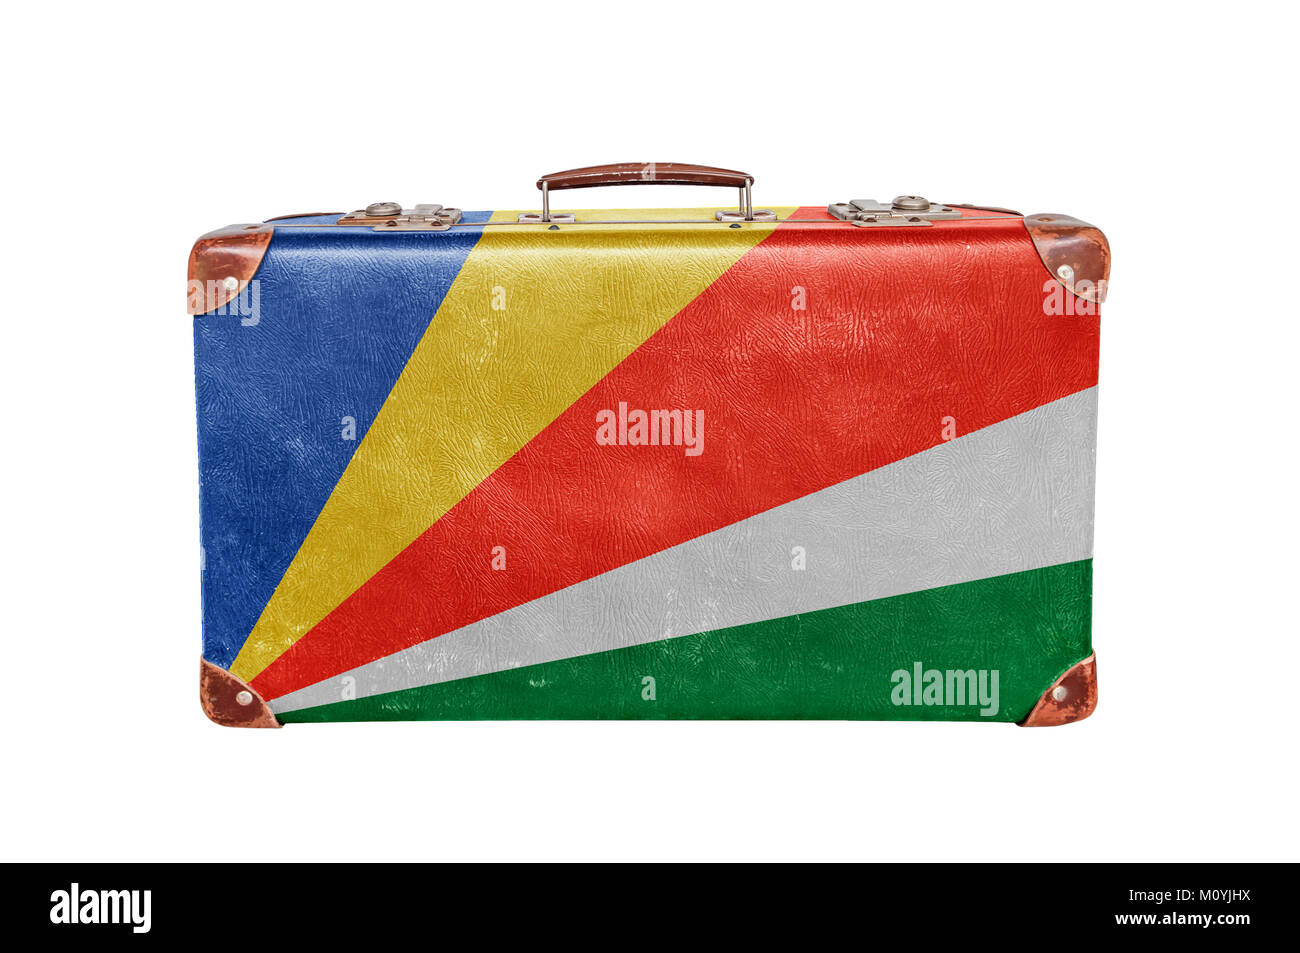 Vintage suitcase with Seychelles flag - Stock Image